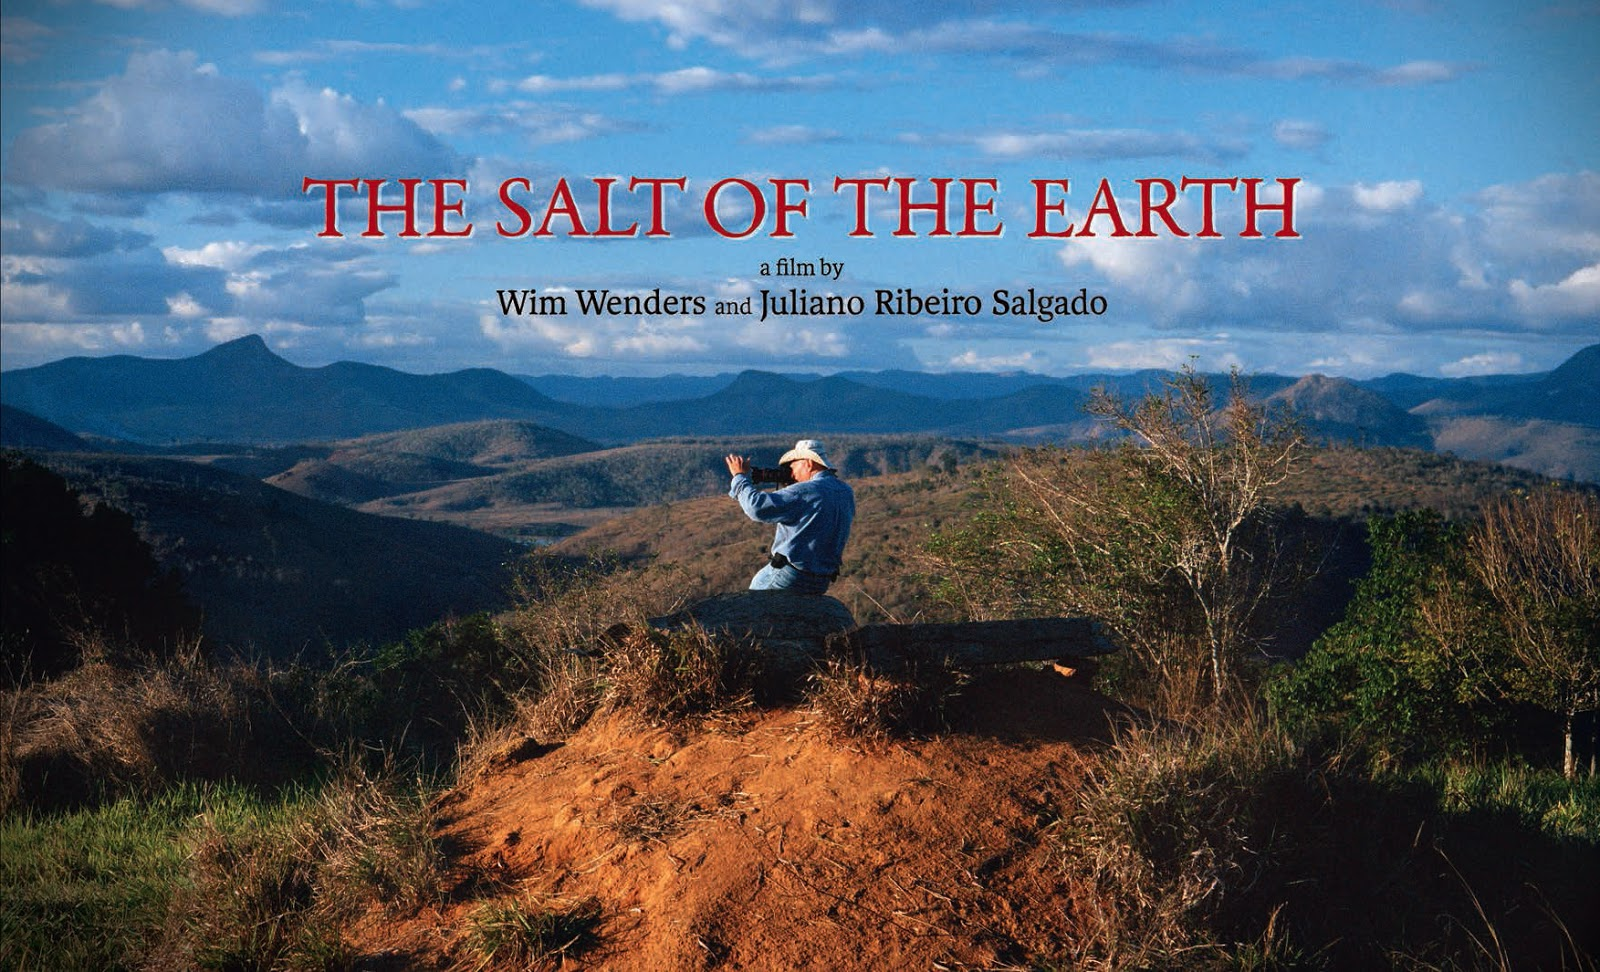 The Salt of The Earth film location in Yalimo Regency Papua